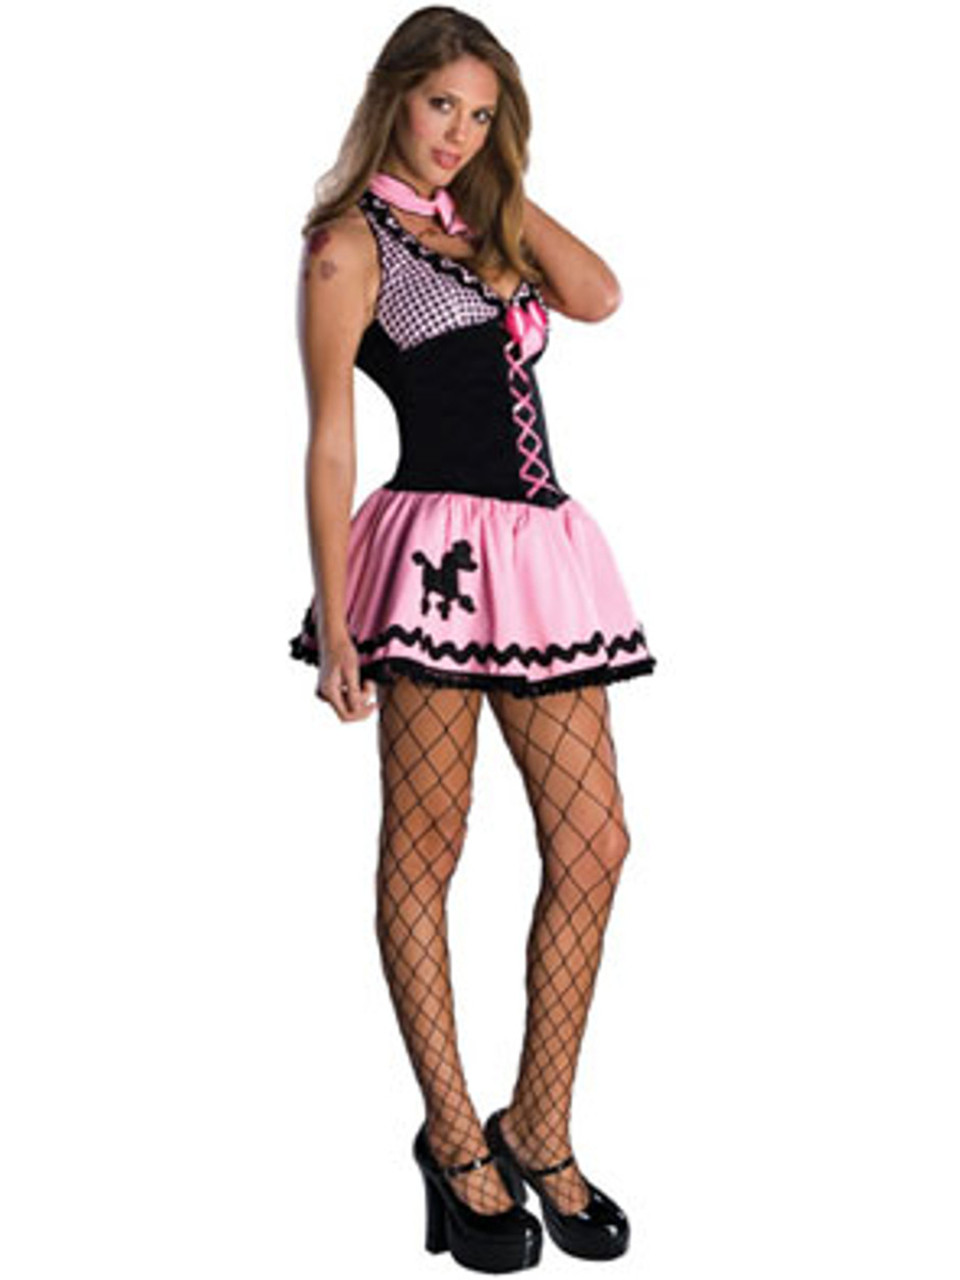 27bc96a4fa1d9 Women's Sexy Adult Hot Rod 50s Sock Hop Poodle Skirt Costume